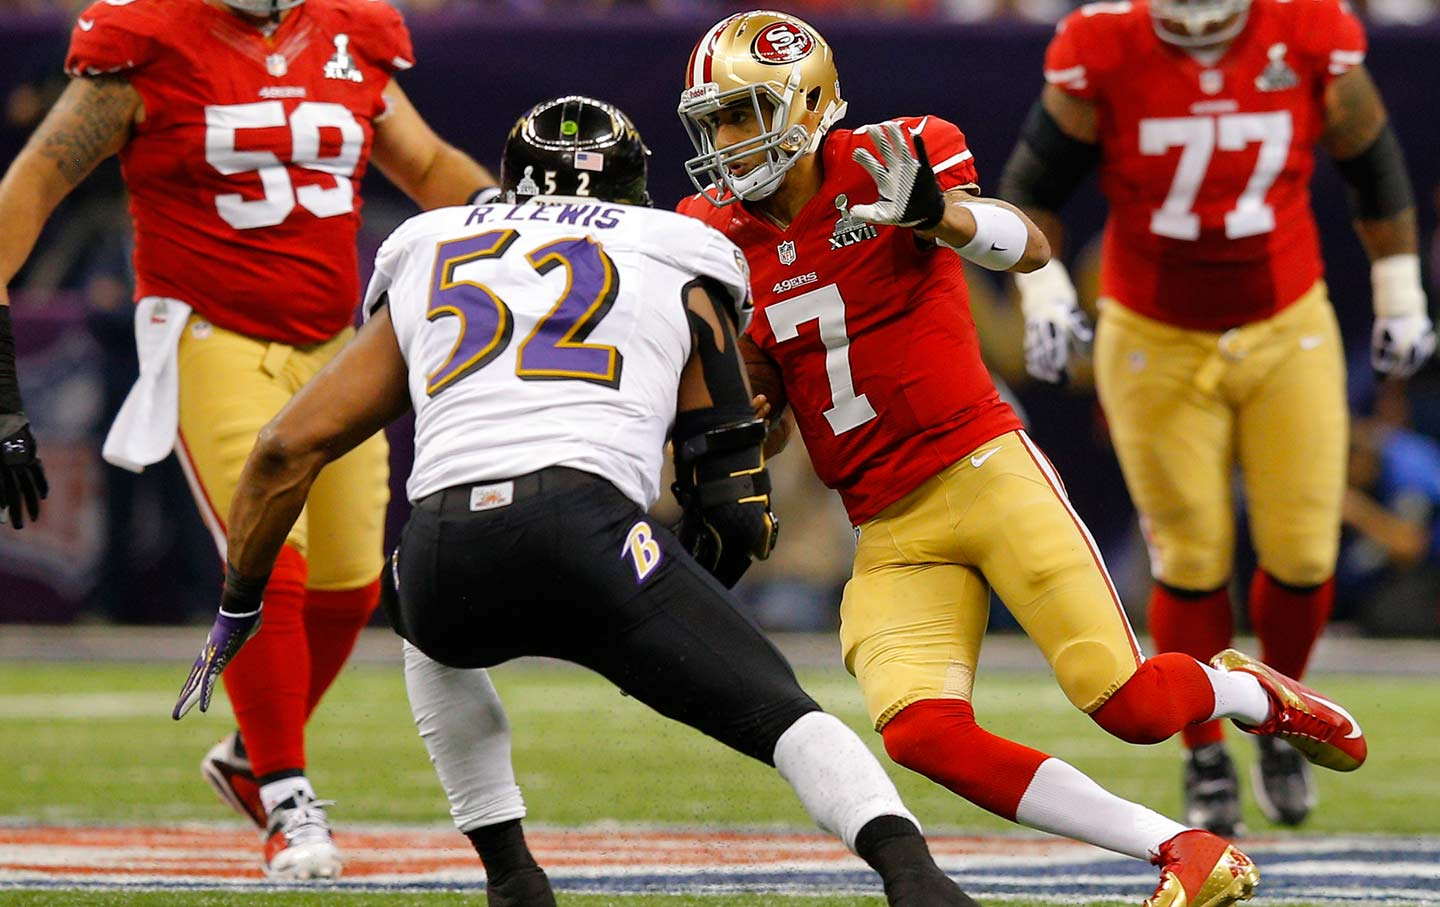 Ray Lewis (52) chases San Francisco 49ers quarterback Colin Kaepernick (7) during the NFL Super Bowl XLVII game on February 3, 2013.